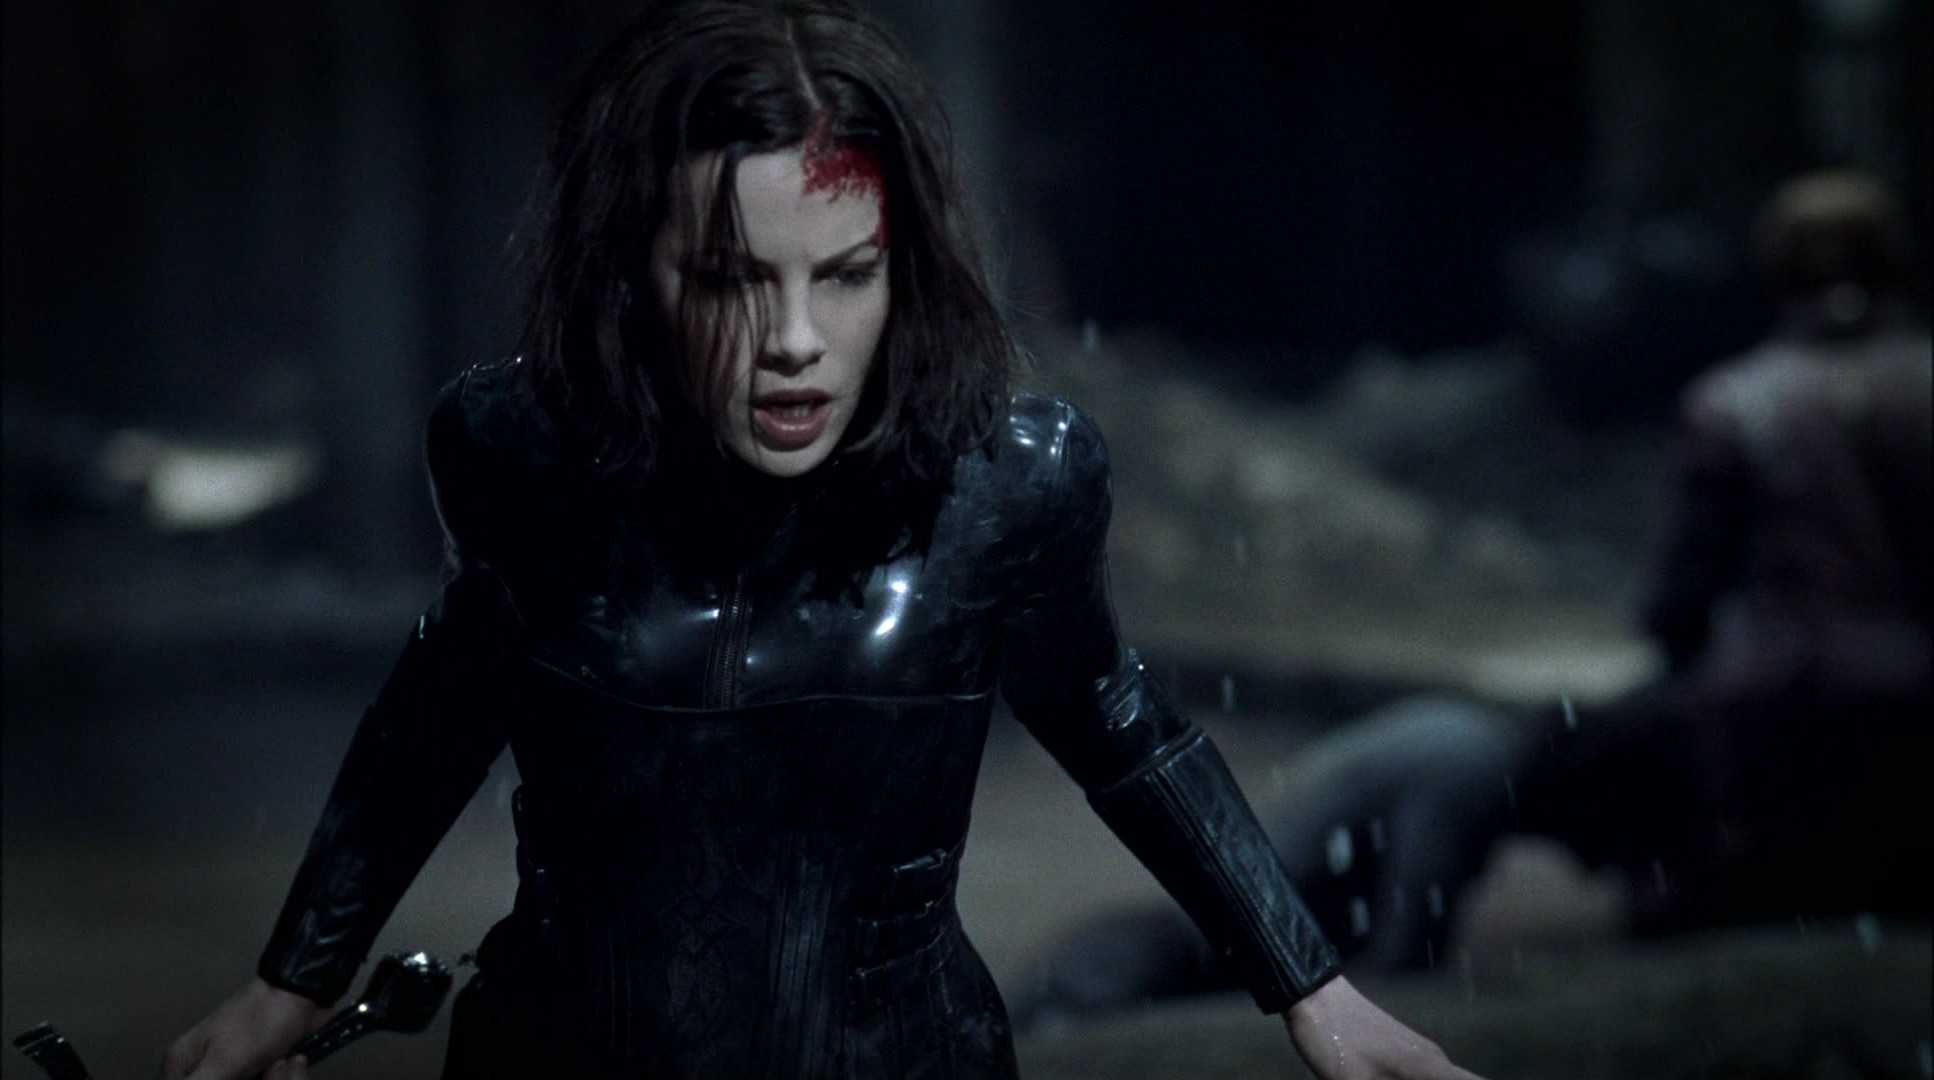 Kate Beckinsale In Underworld 5 Ihre Frisur Coiffure